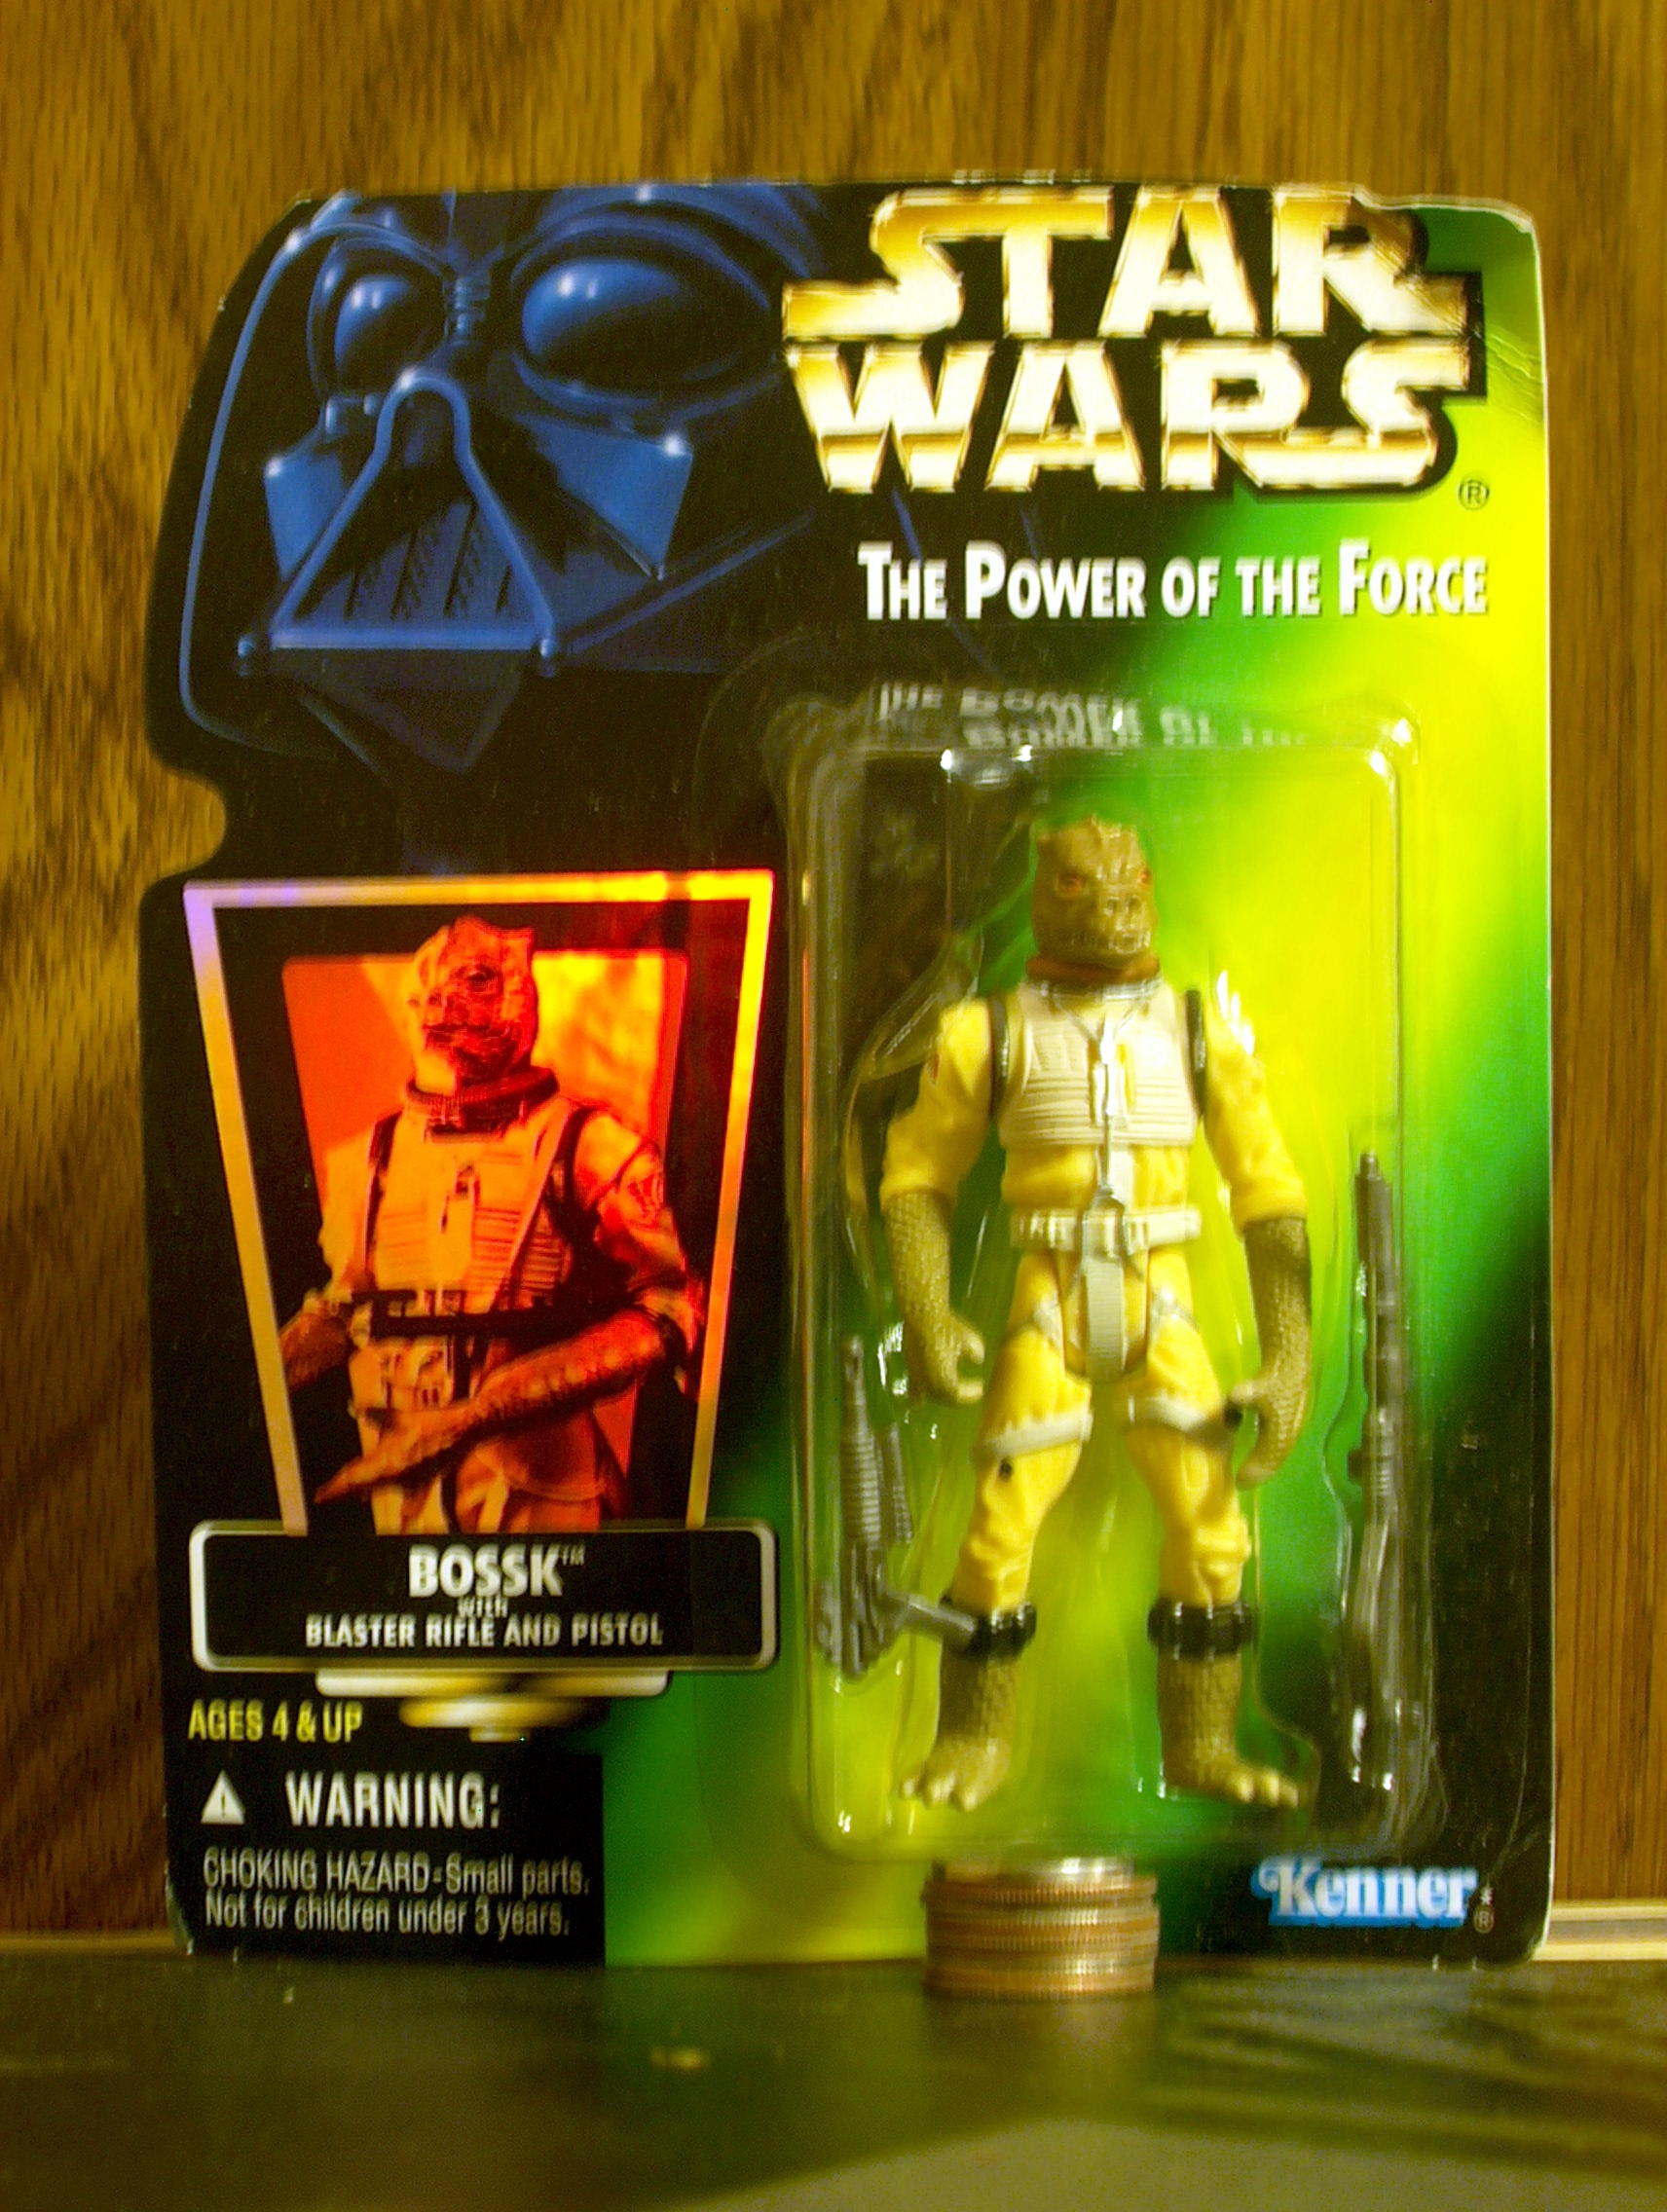 Bossk with Blaster Rifle and Pistol